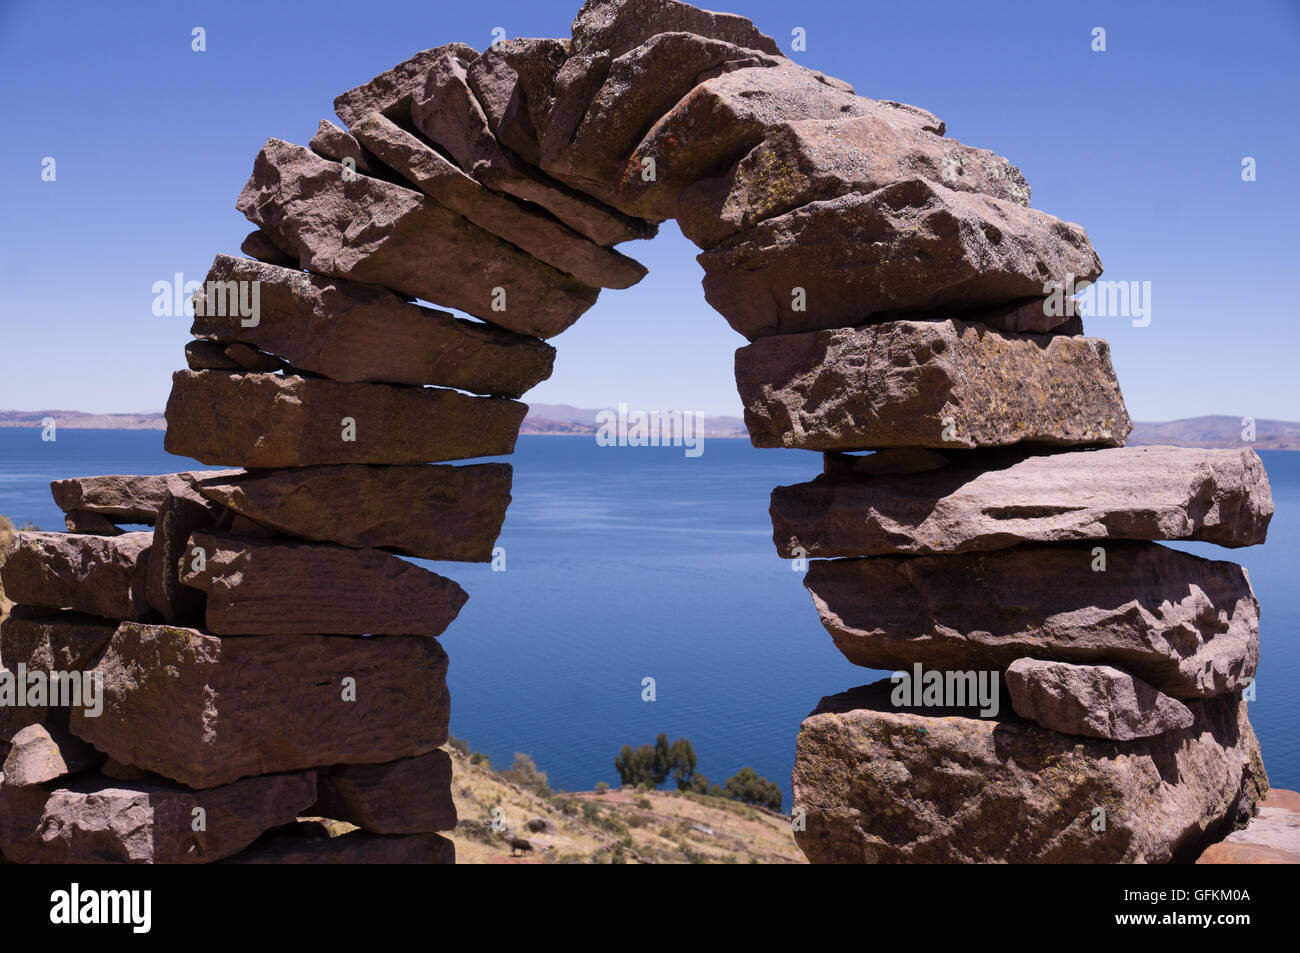 Taquile Island, Peru: A historic stone arch with view over Lake Titicaca - Stock Image